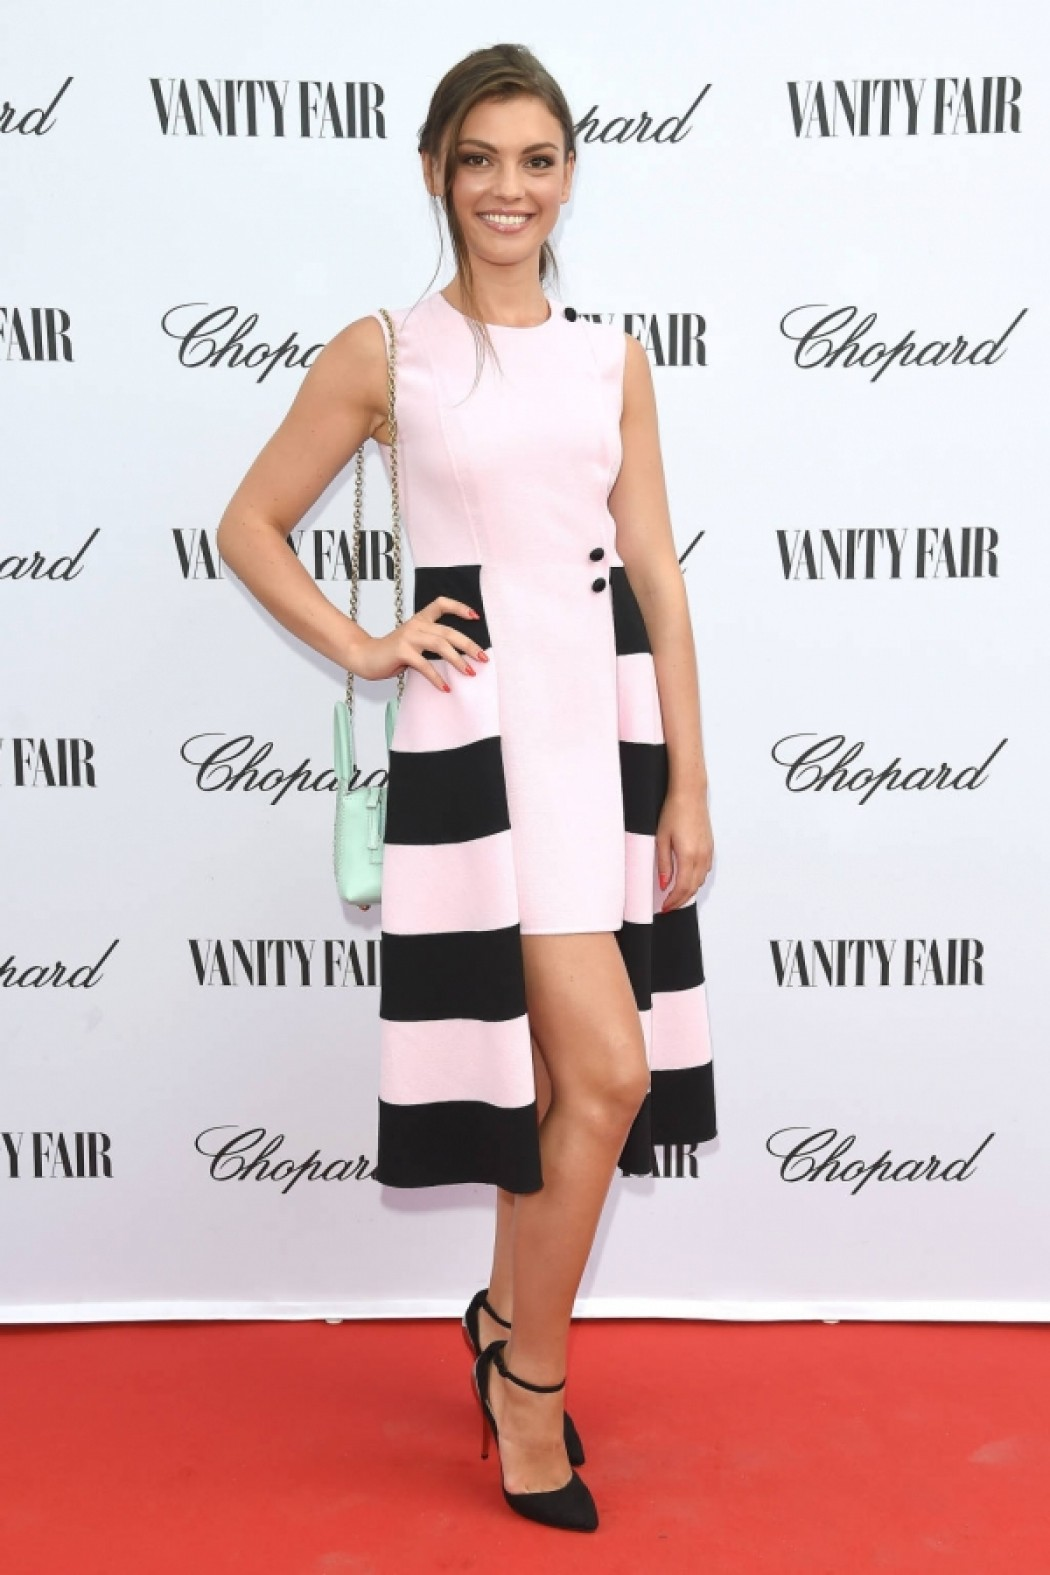 Silvia Busuioc at Vanity Fair event